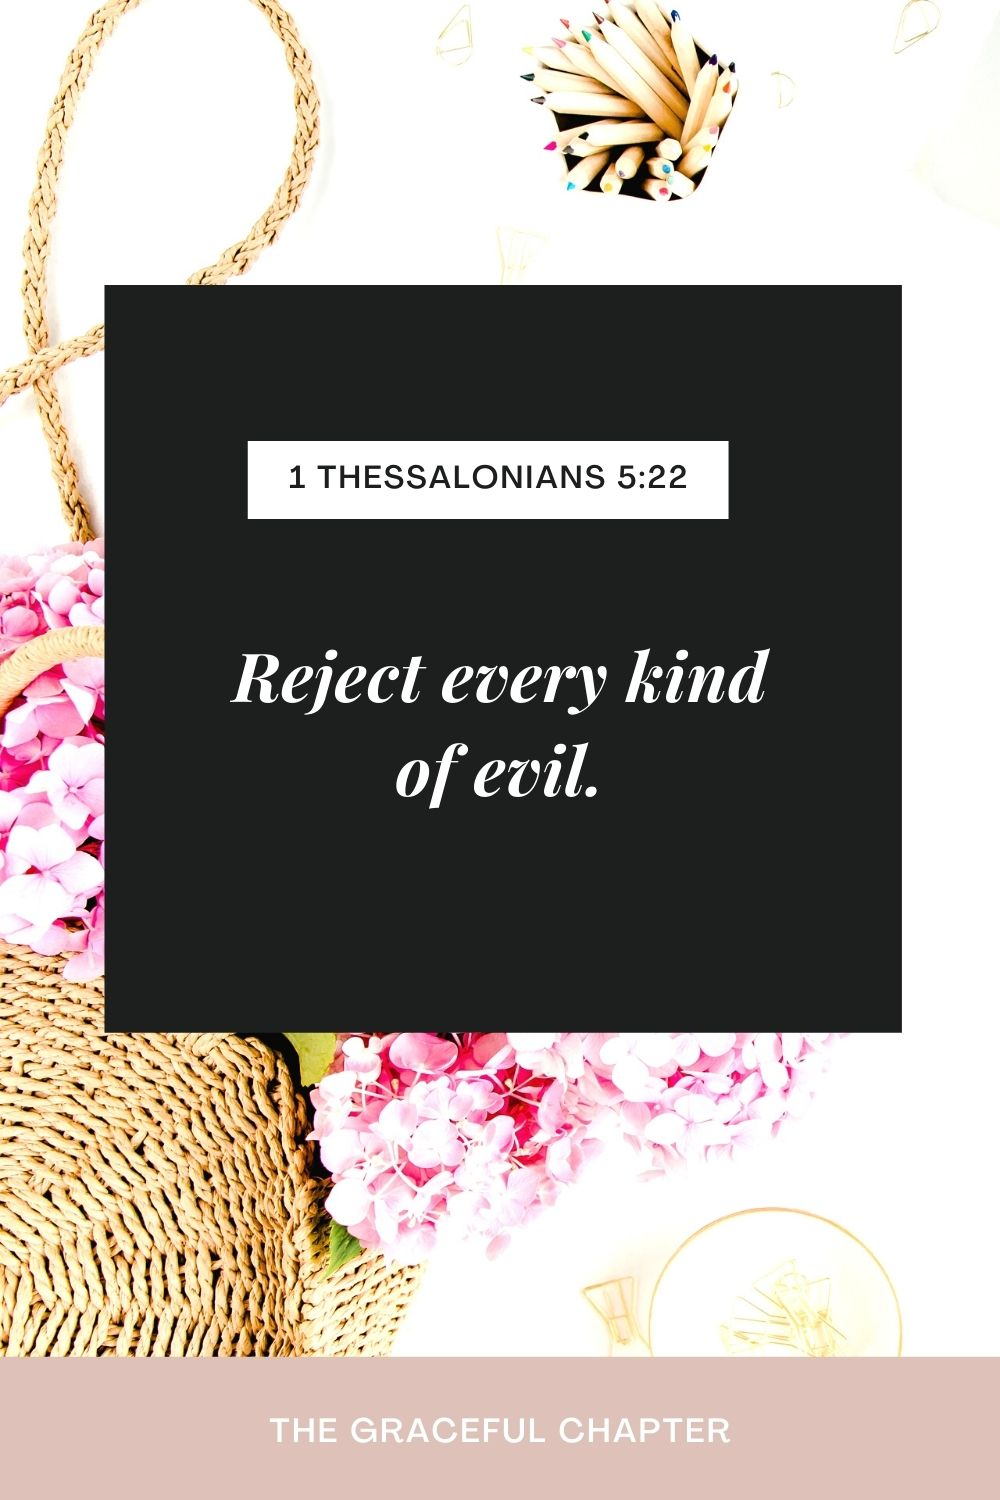 Reject every kind of evil. 1 Thessalonians 5:22